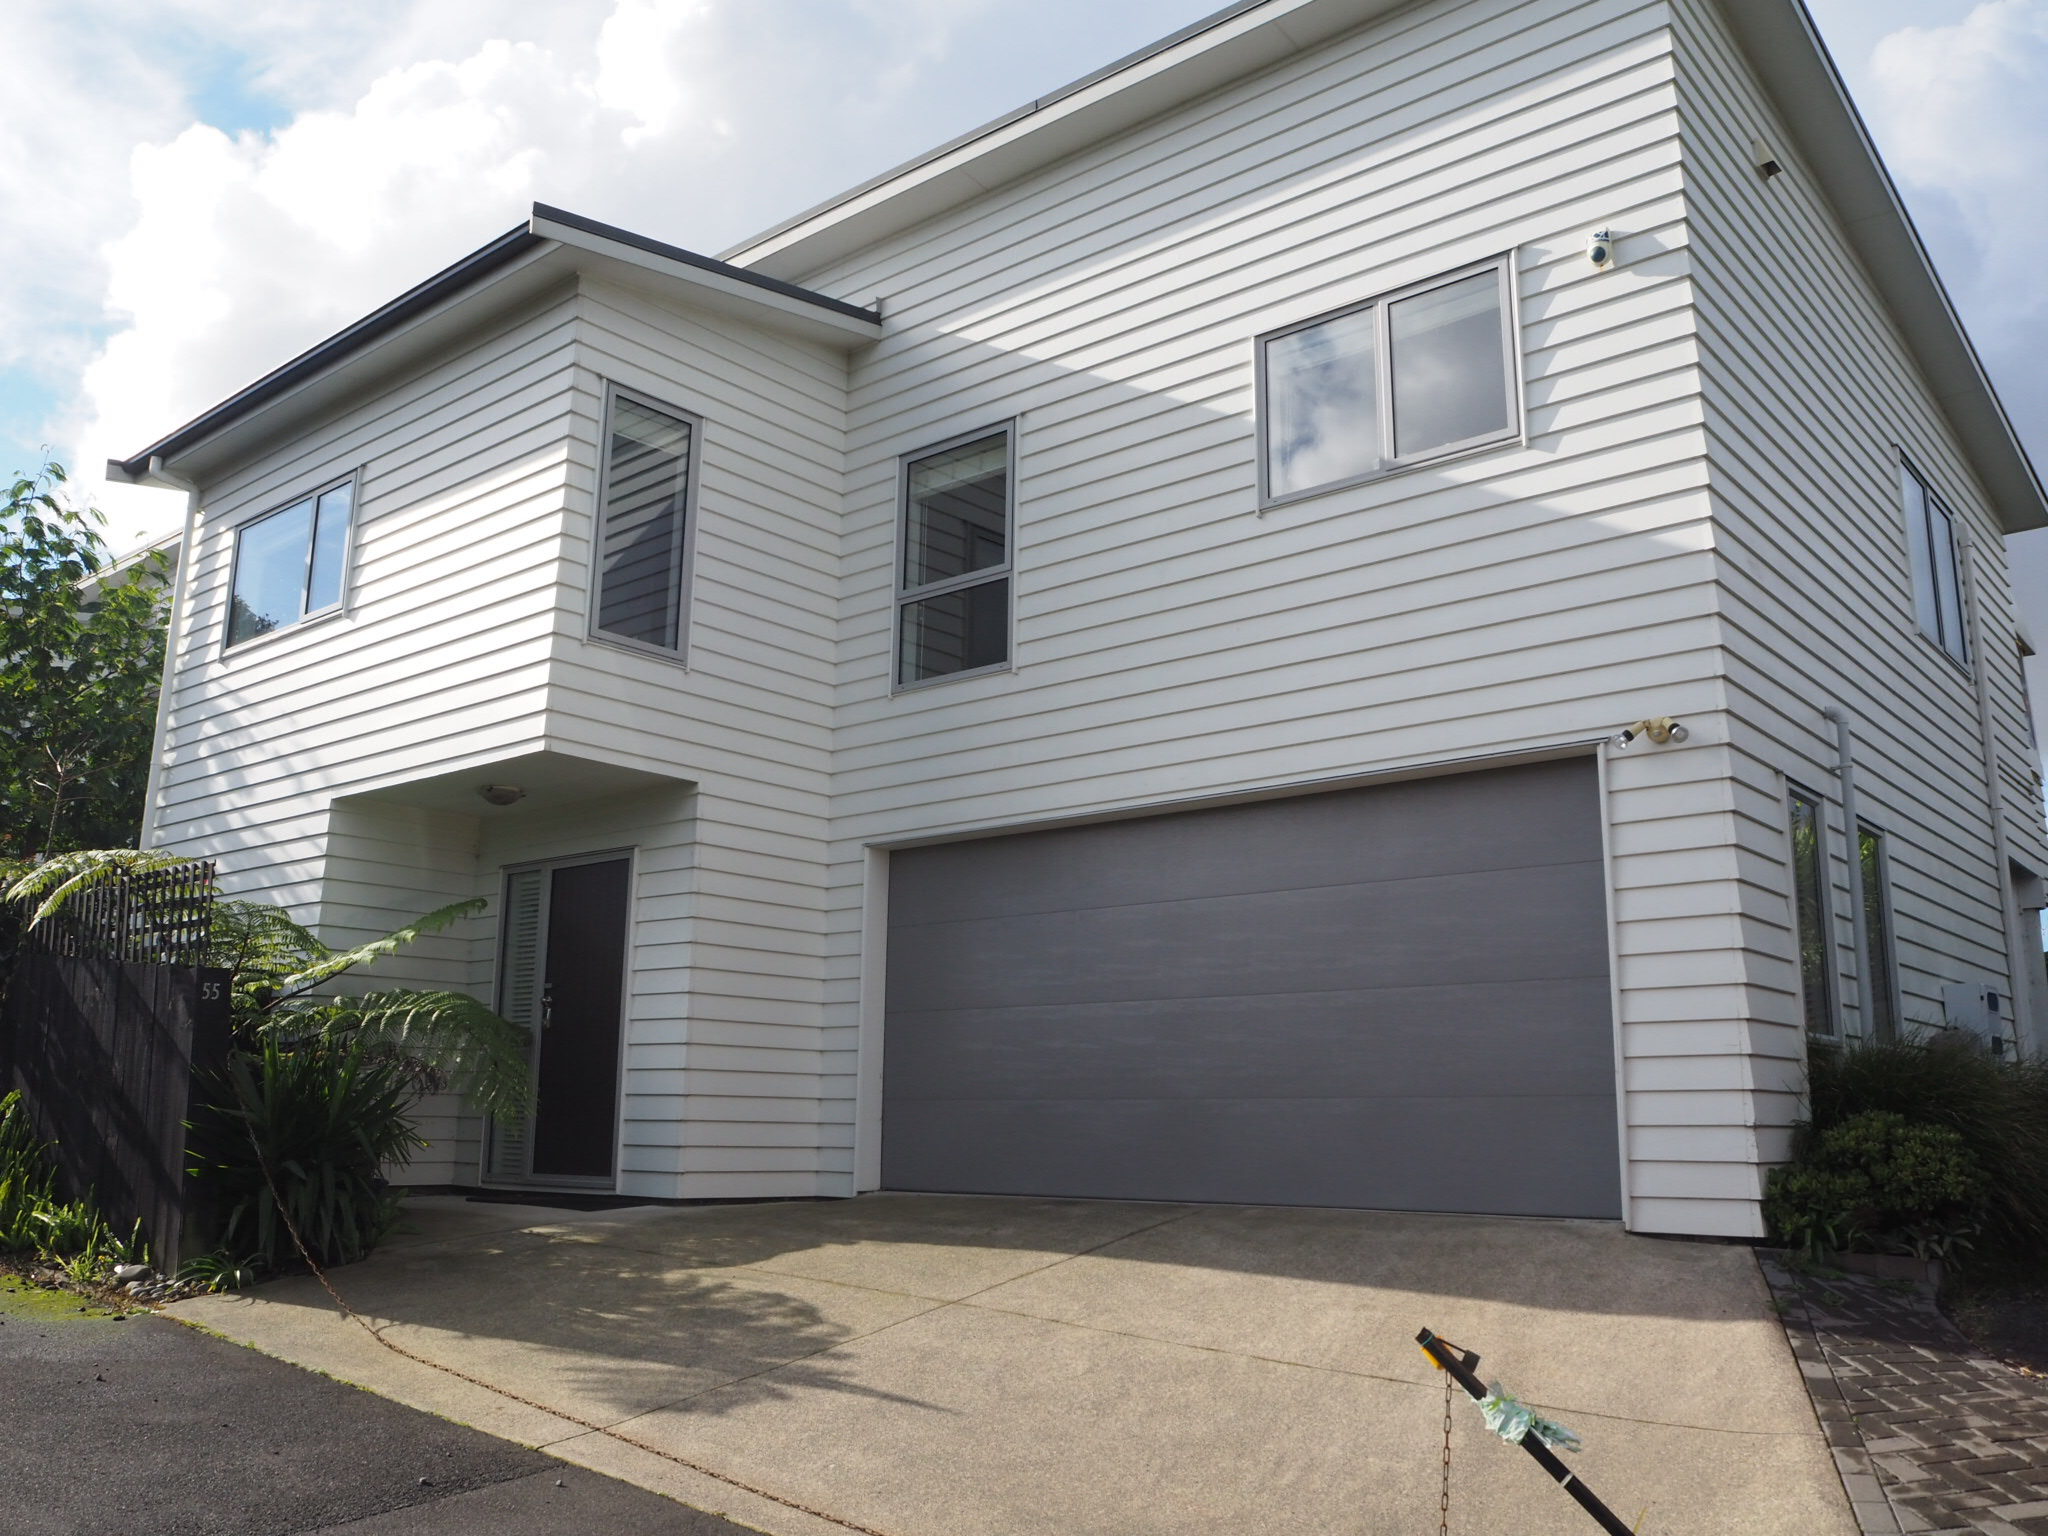 Housesitting in Panmure, Auckland